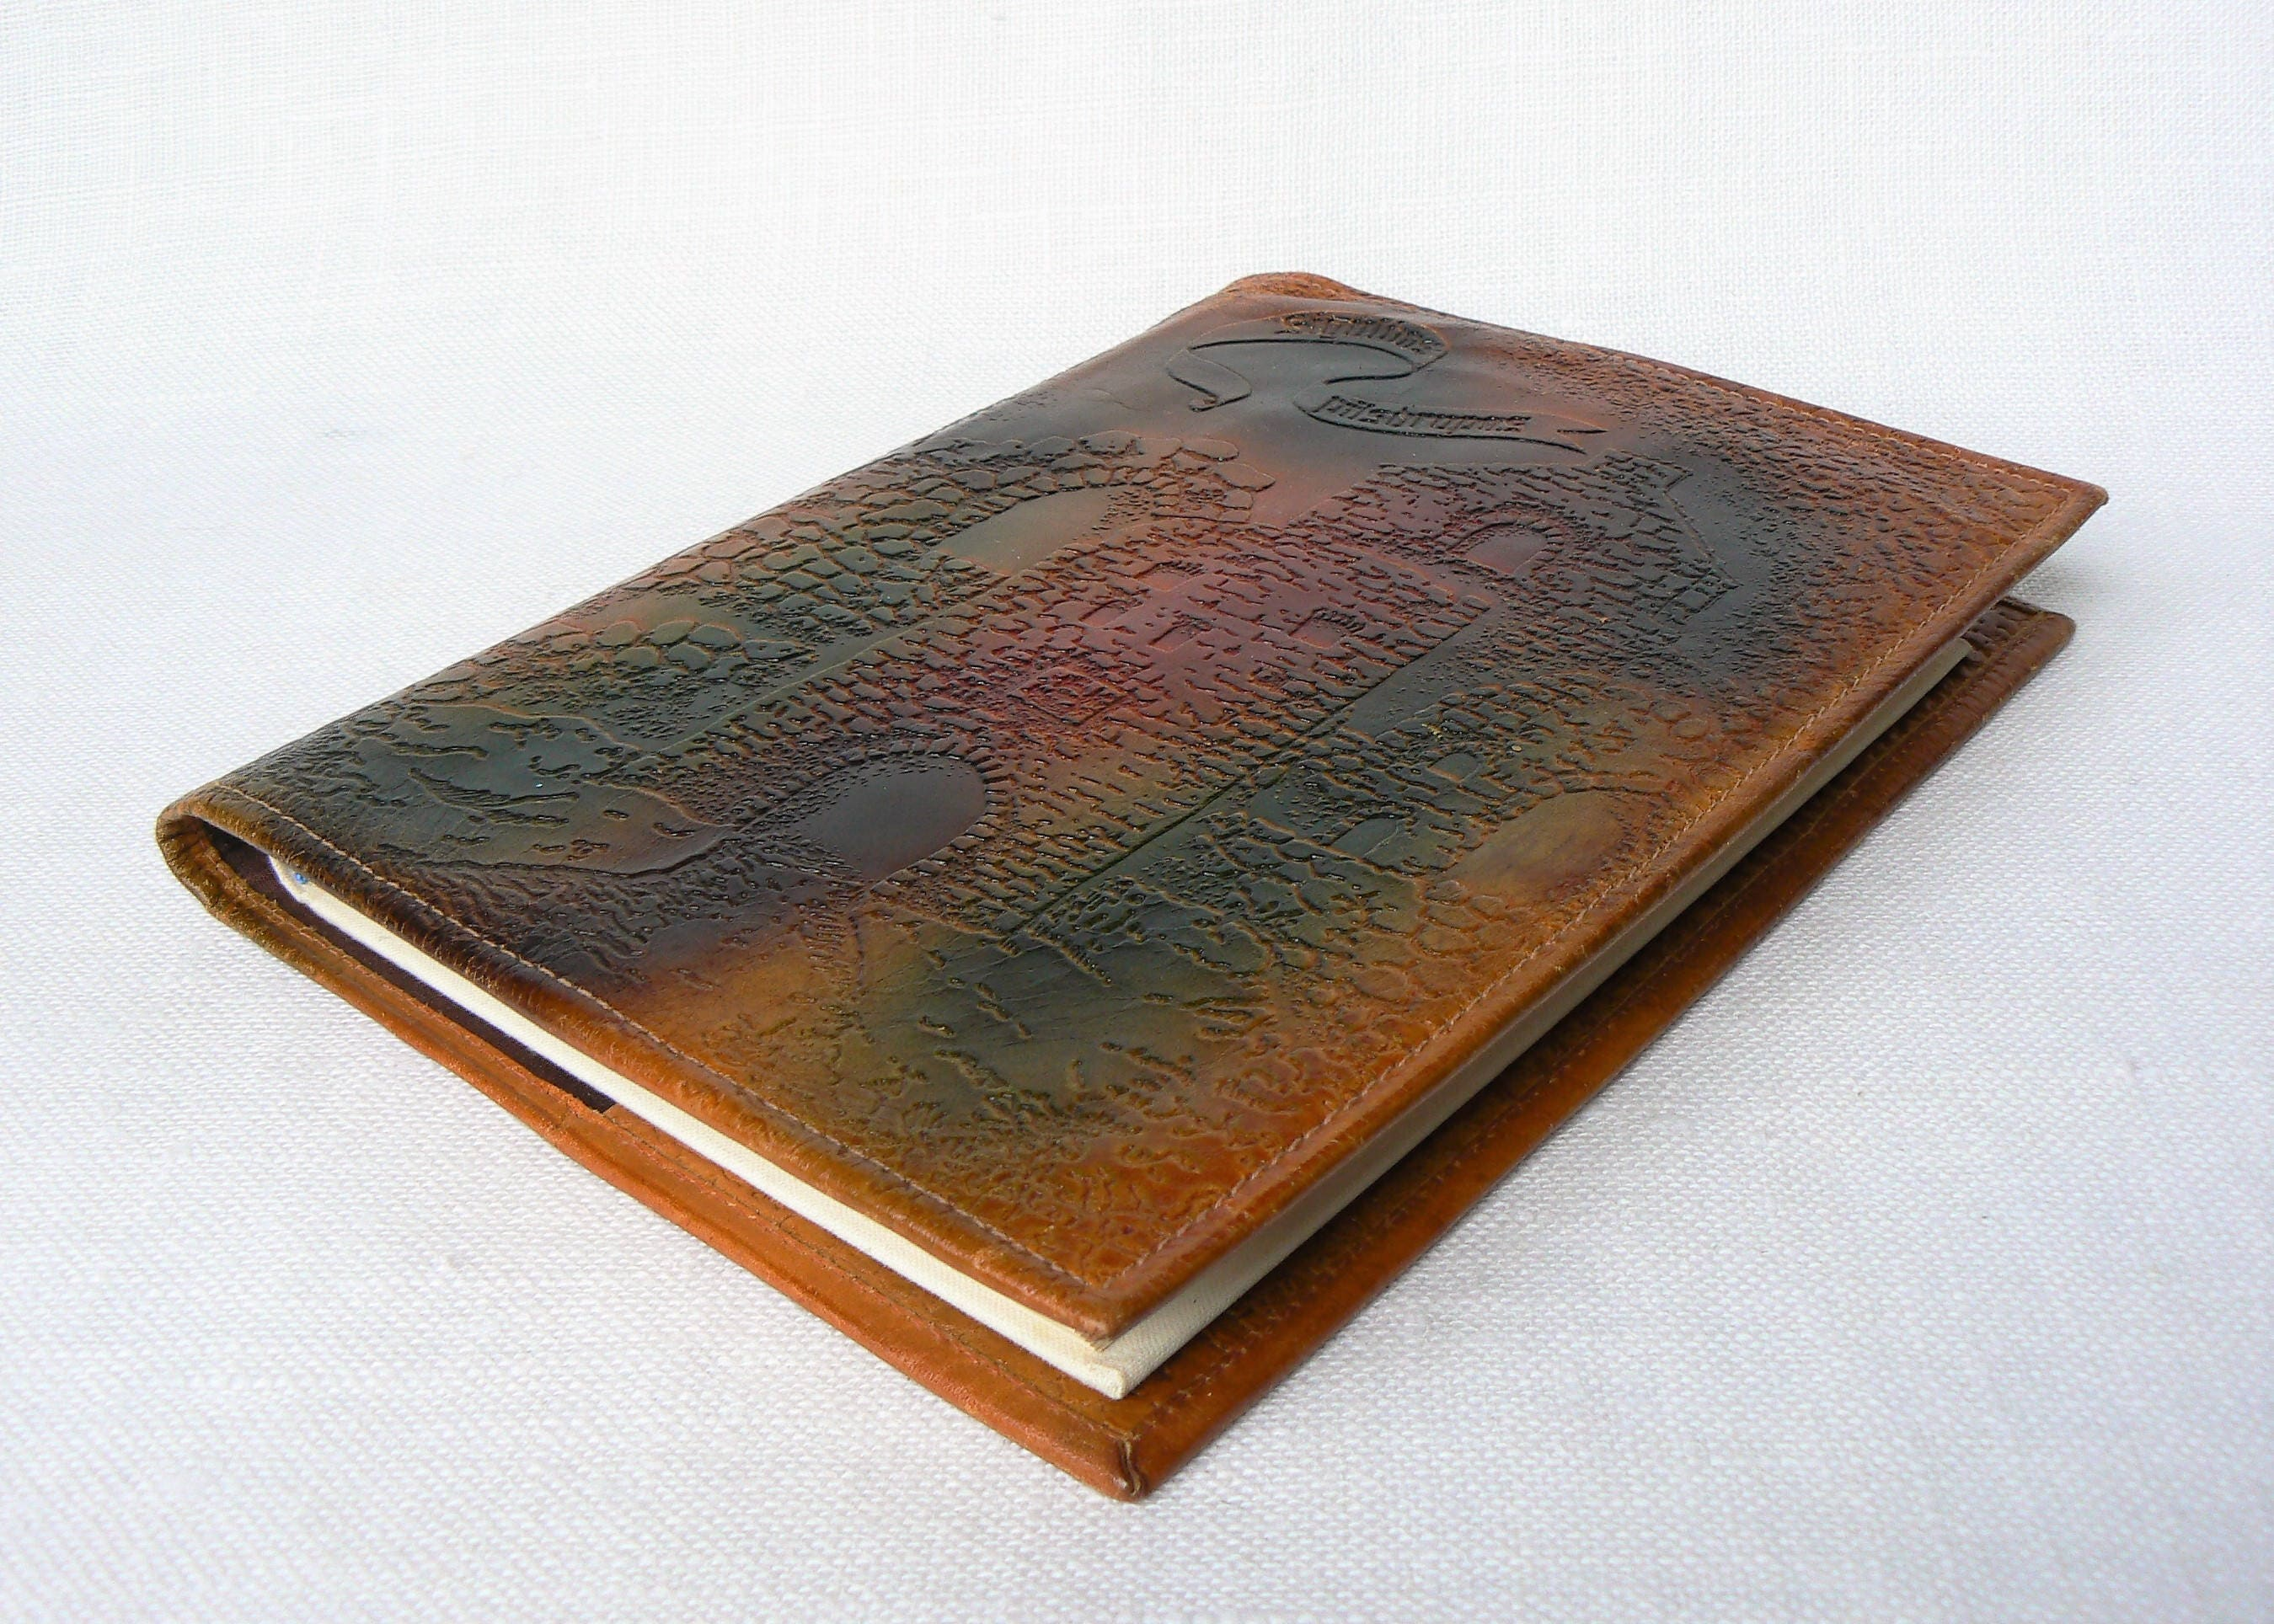 Fullsize Of Leather Book Covers